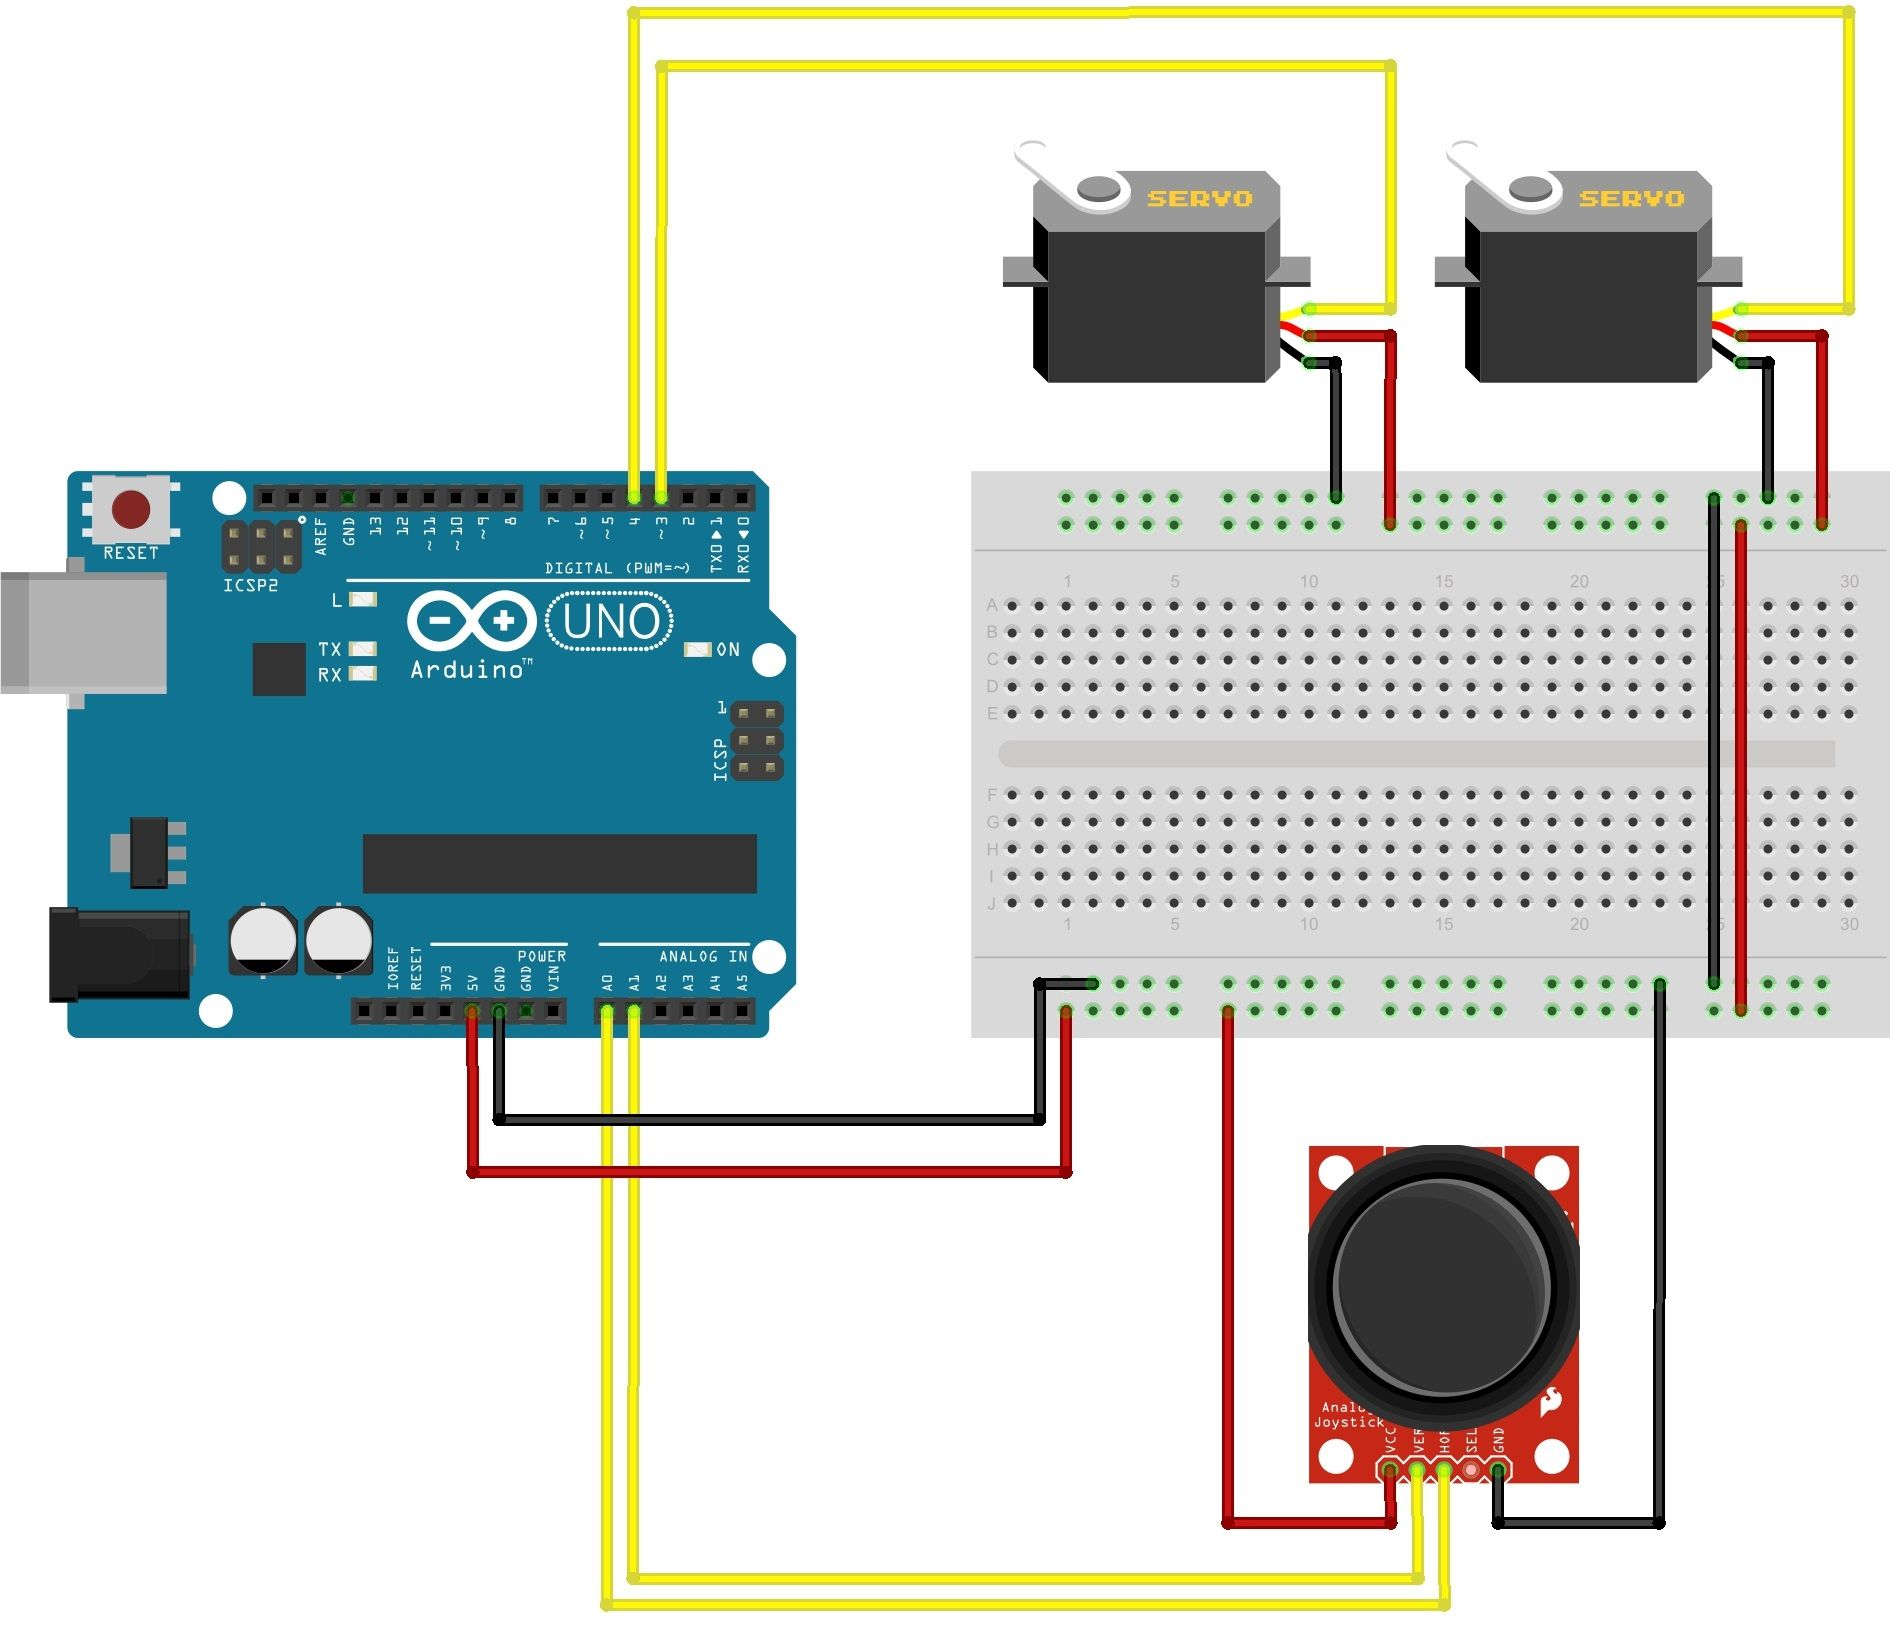 I Wrote A Program To Generate Smooth Position Pros Output The Servos Arduino Main Mearm Ino Connects Usb Serial O And